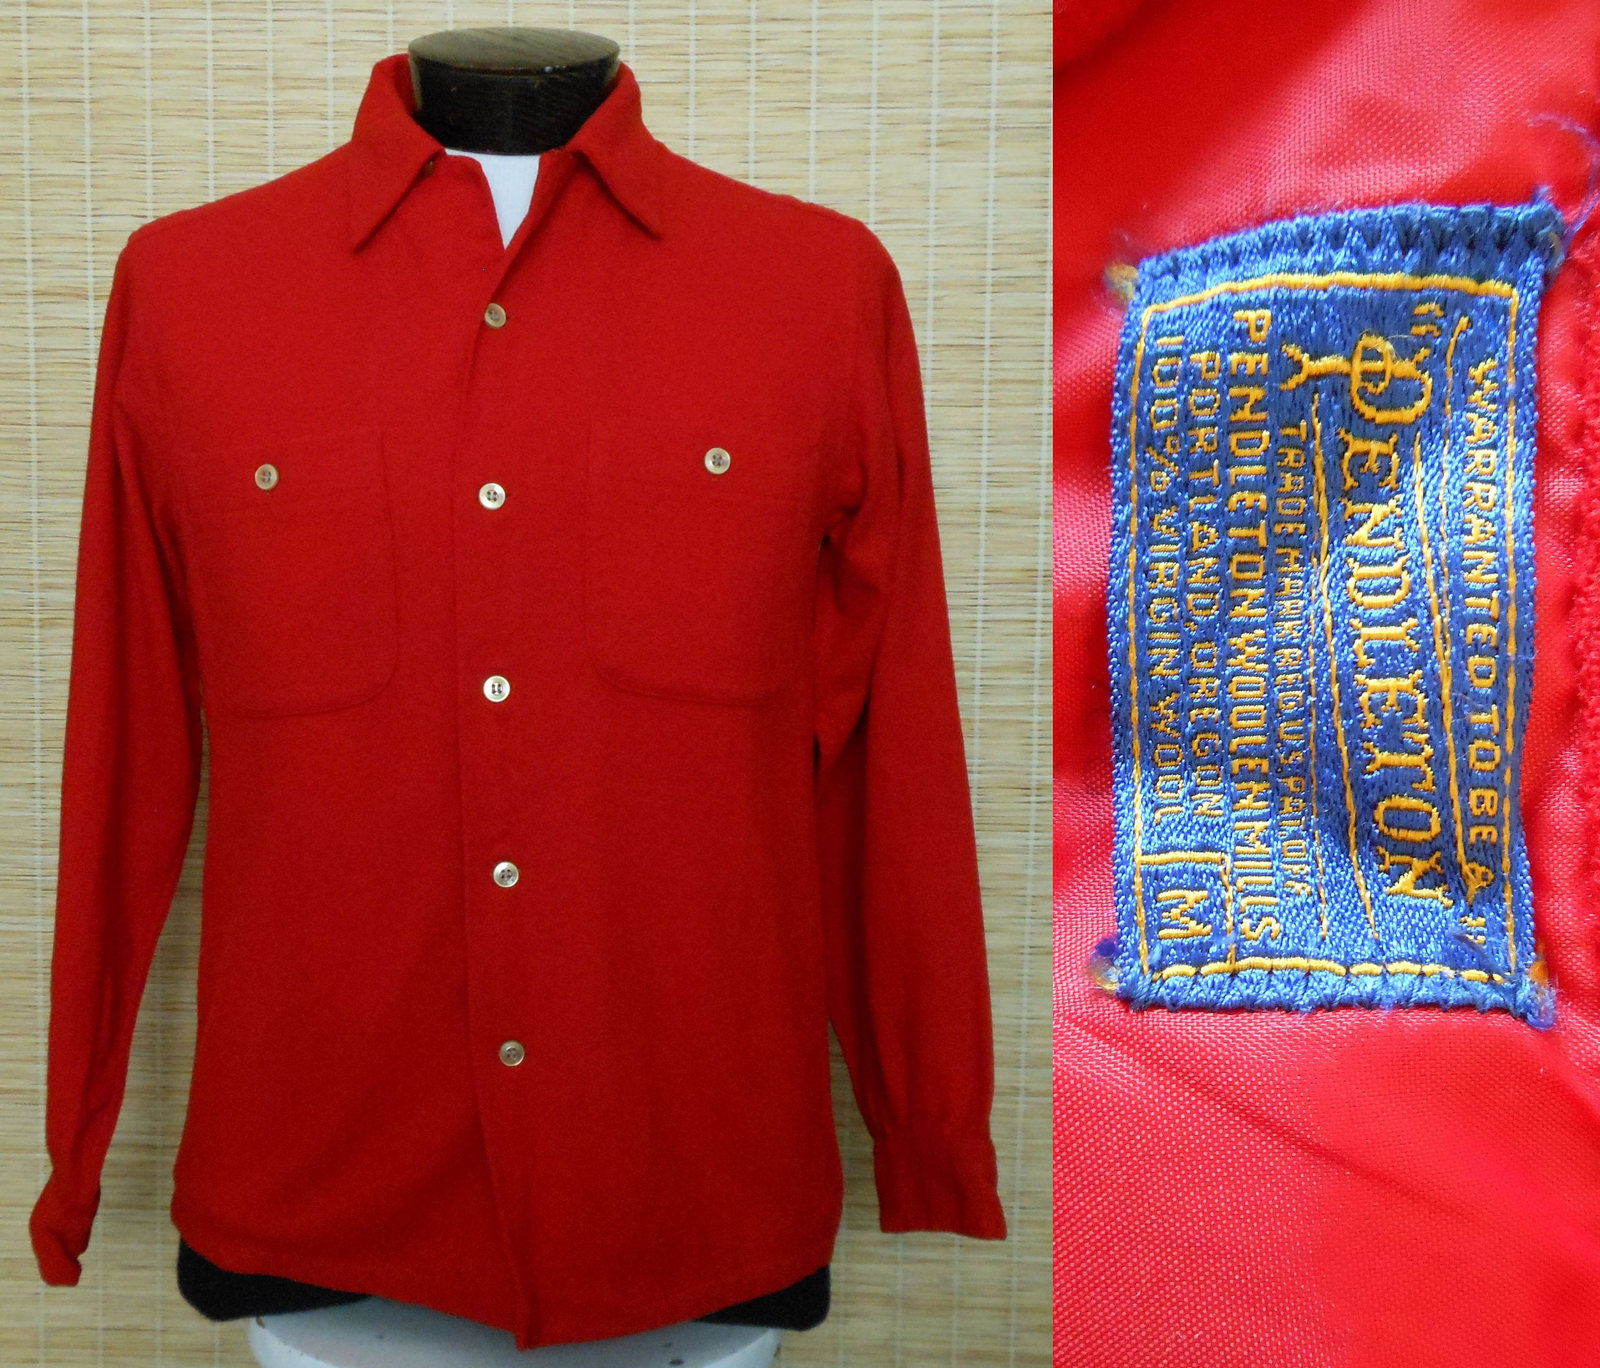 4517134a Vintage 60s Pendleton Board Shirt Woolen and 38 similar items. Il  fullxfull.1412897505 drkj